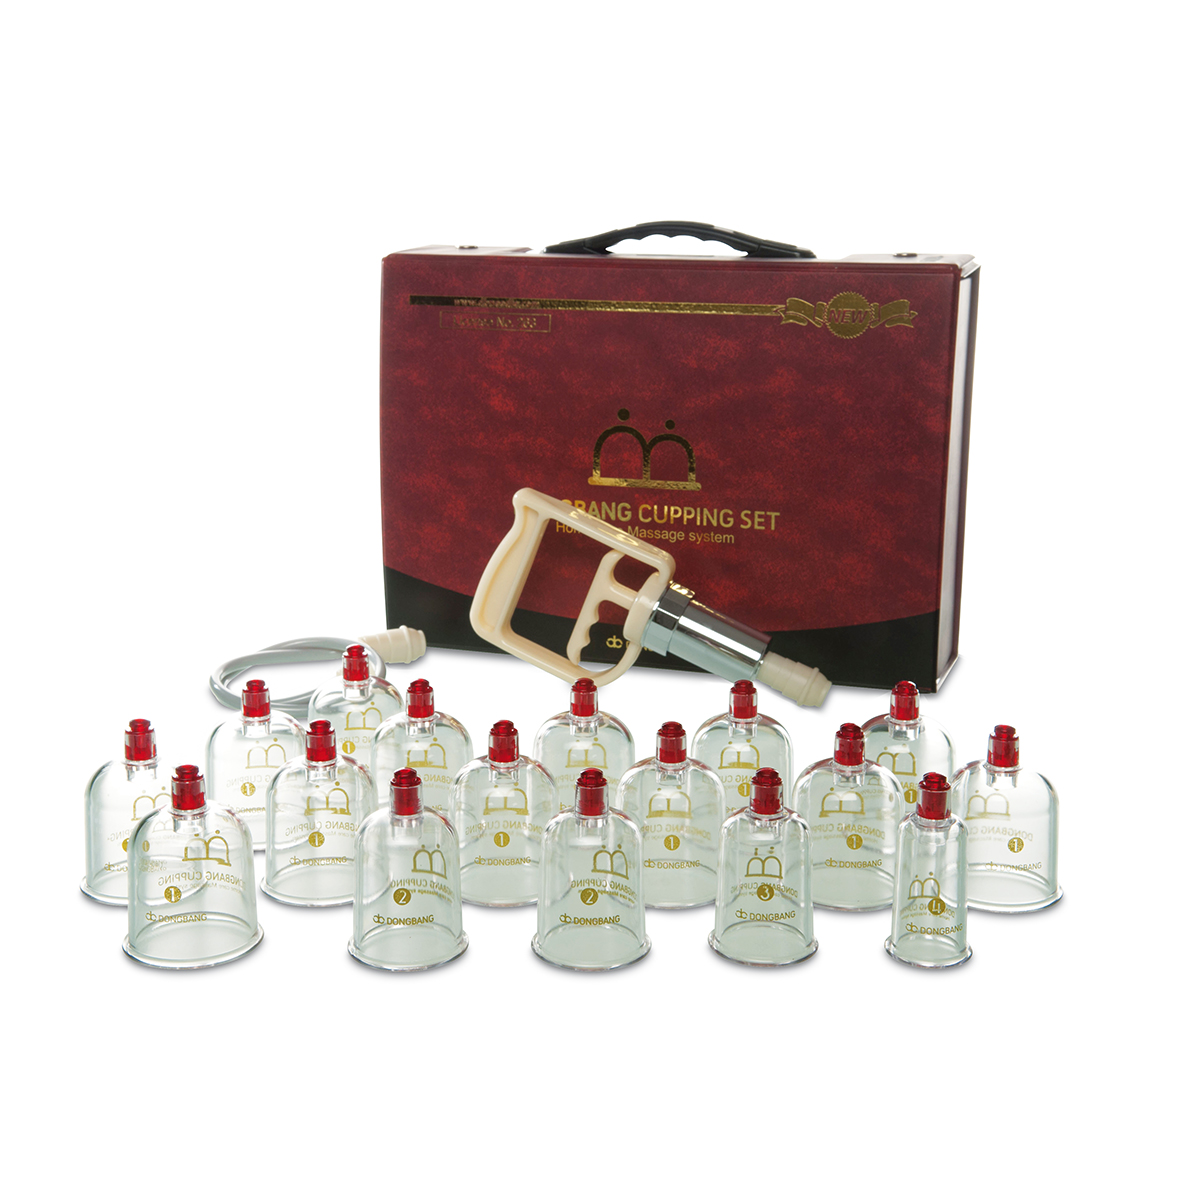 Image result for cupping set with pump